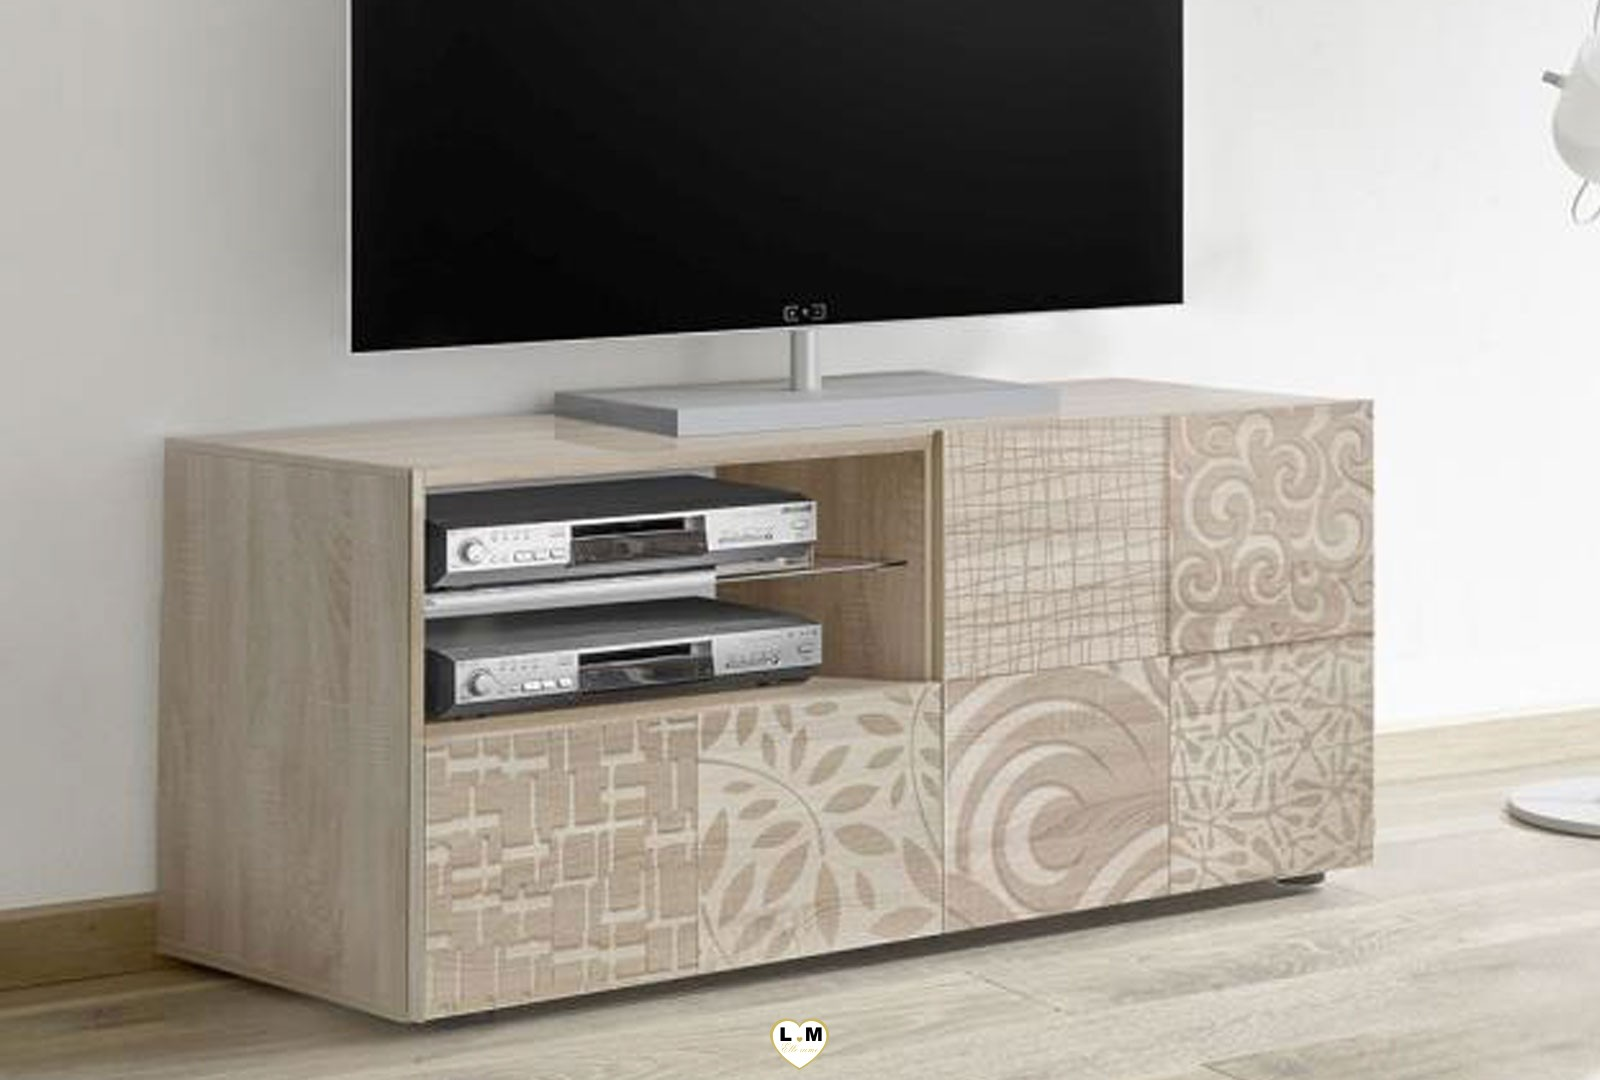 loly chene samoa sejour salle a manger design le petit meuble tv votre site de meuble en ligne. Black Bedroom Furniture Sets. Home Design Ideas